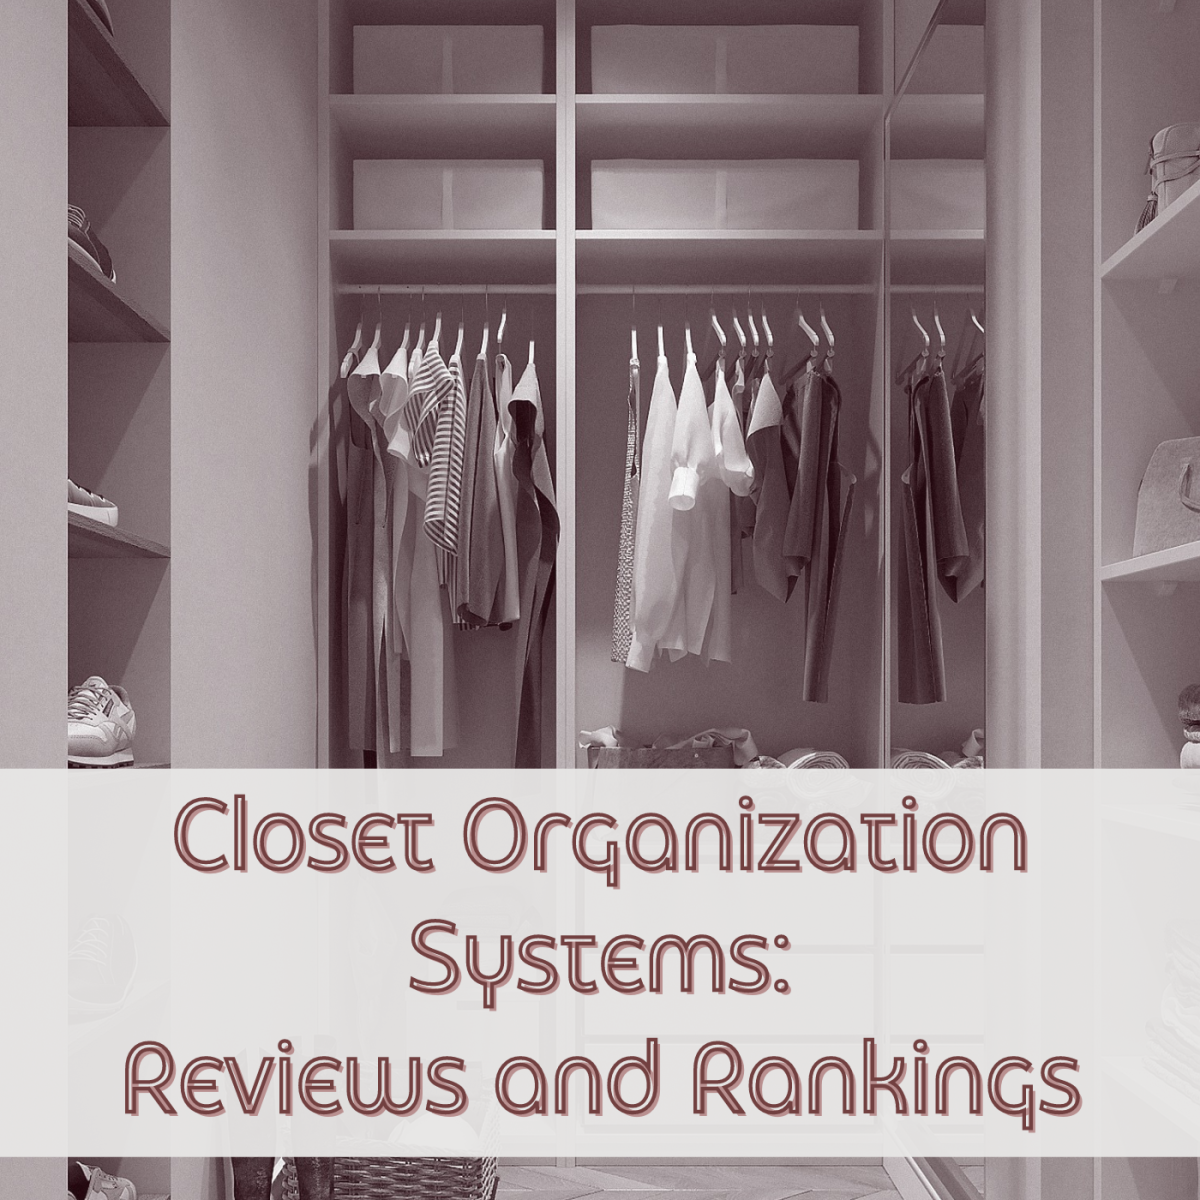 Need some help deciding between the closet organization systems from IKEA, Closetmaid, and Rubbermaid? See how we rank them!